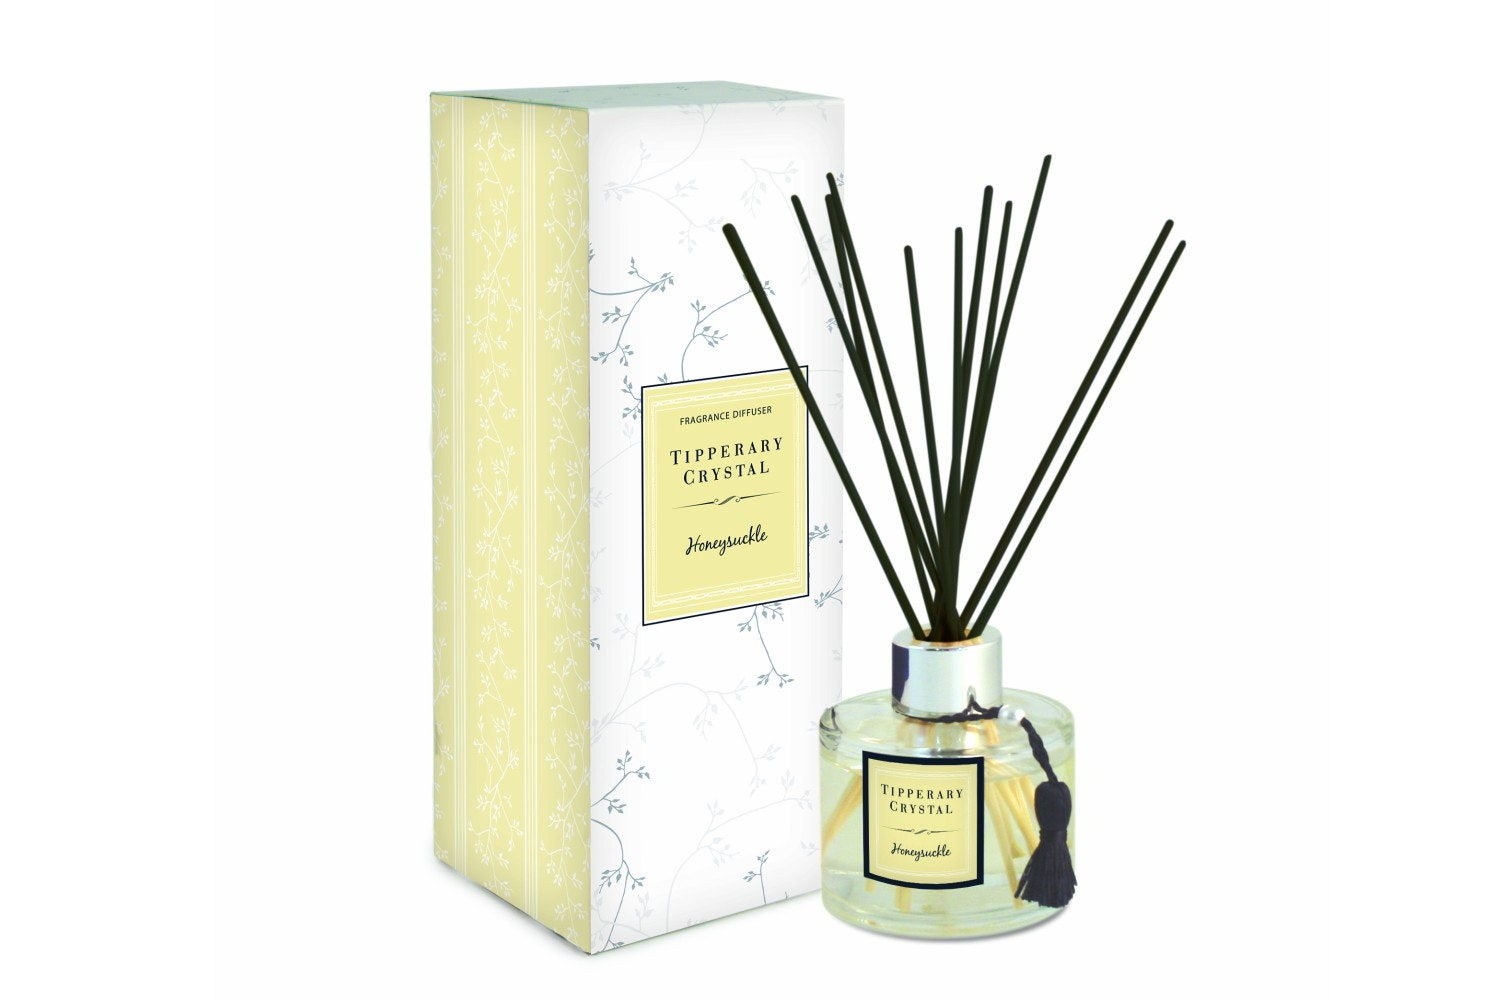 Tipperary Crystal Honeysuckle Fragranced Diffuser